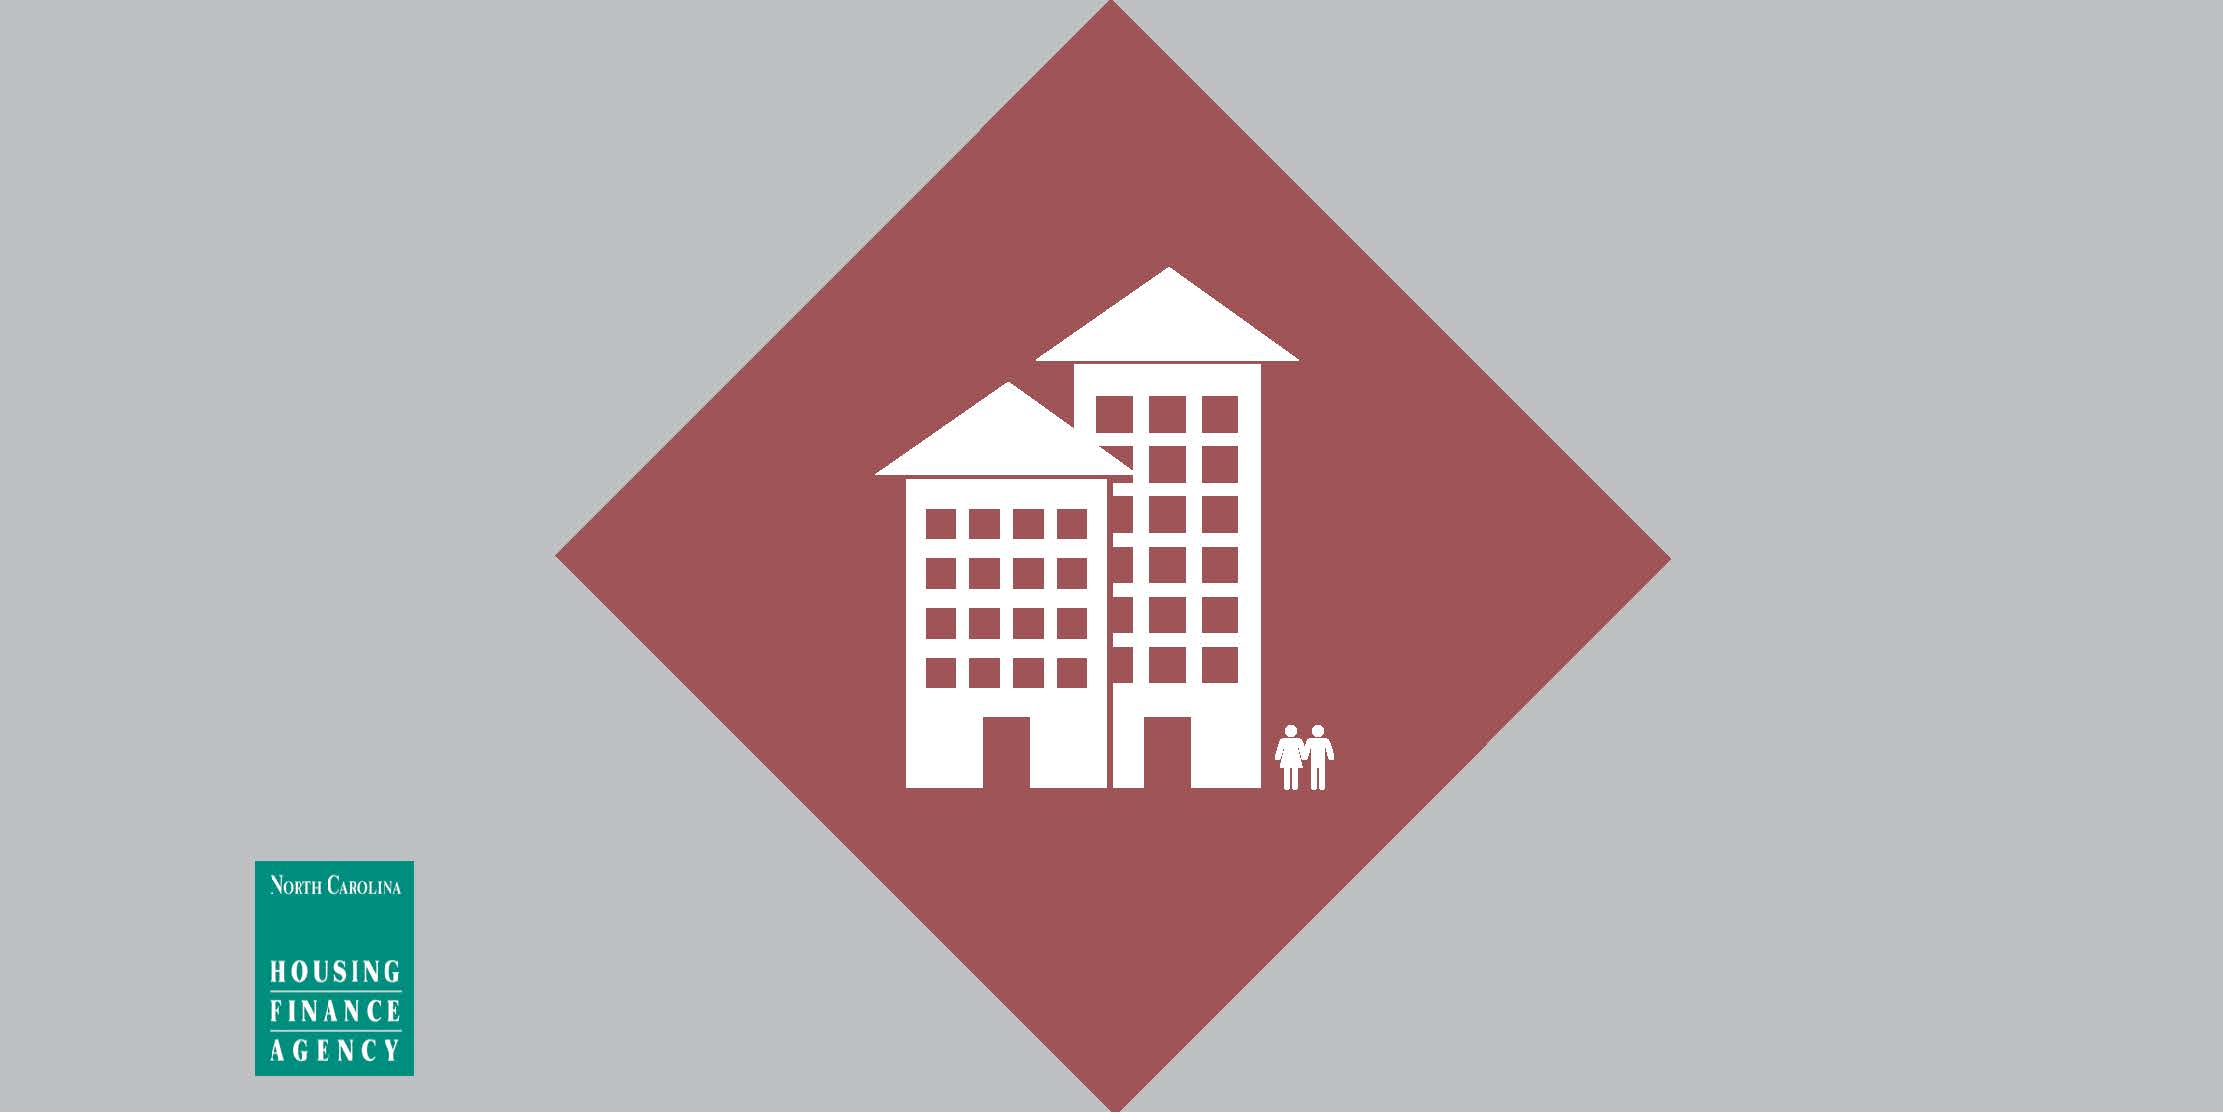 Red diamond in gray graphic with apartments in center